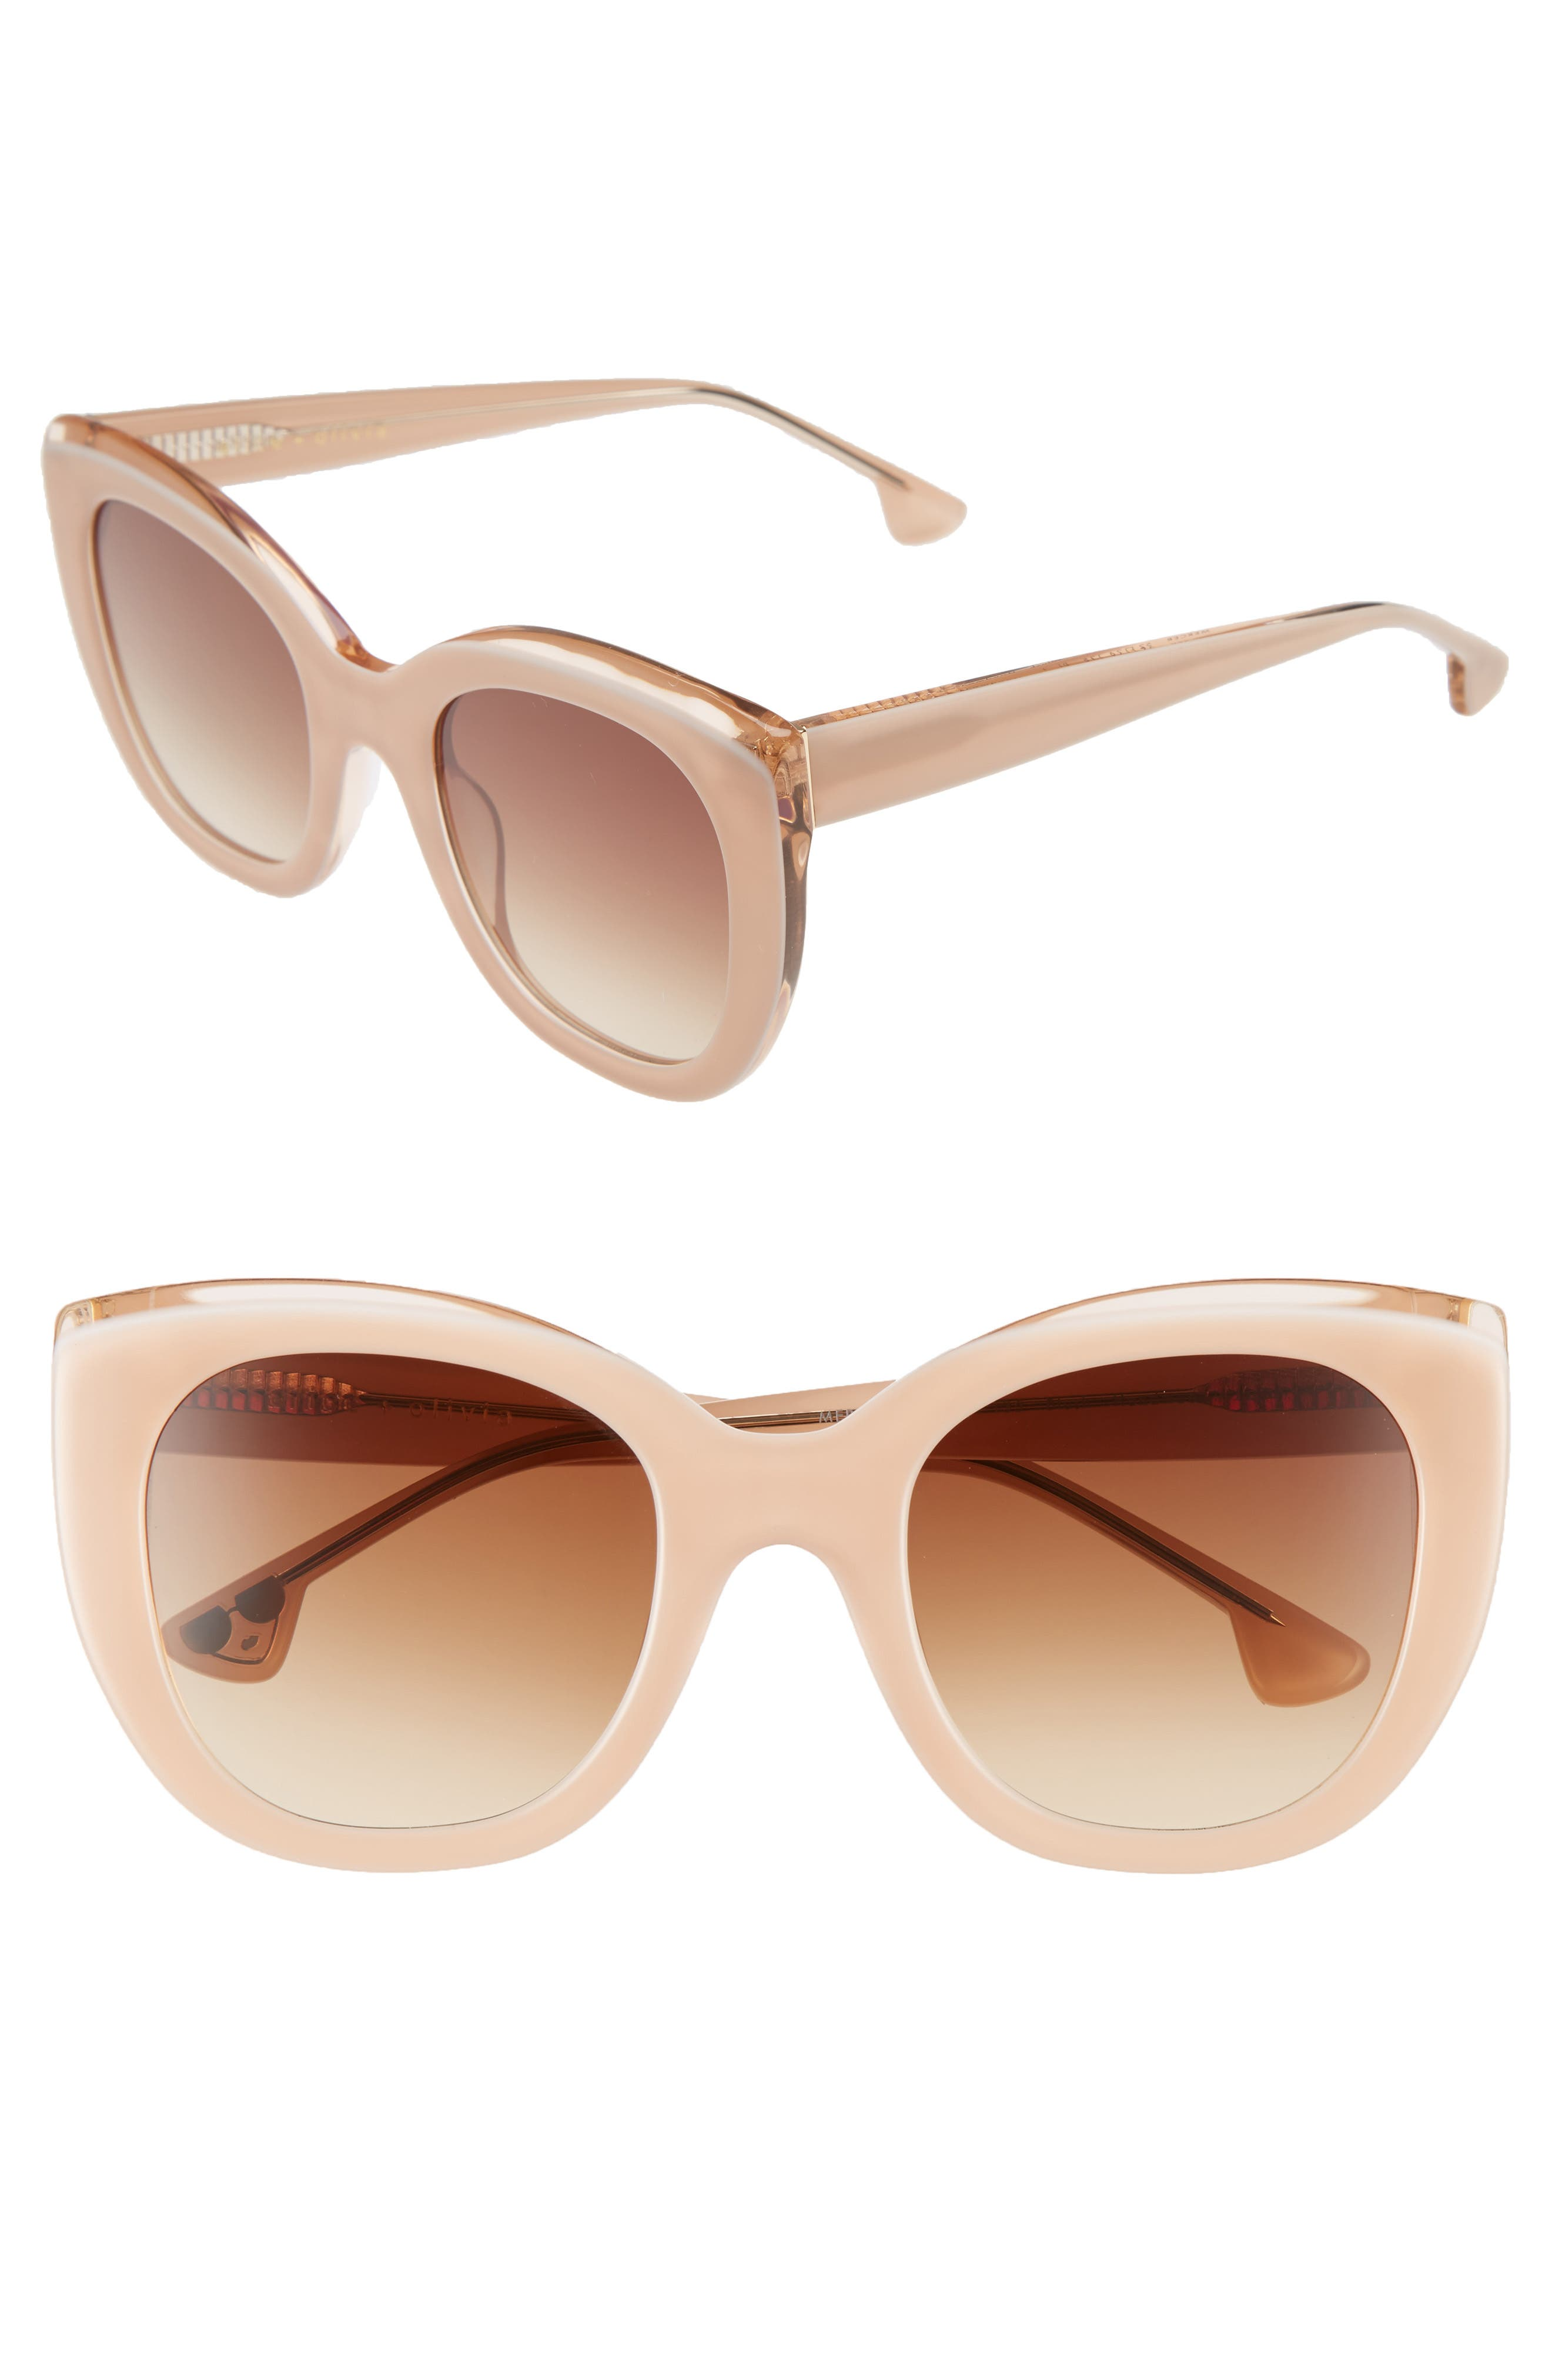 Mercer 52mm Cat Eye Sunglasses,                             Main thumbnail 3, color,